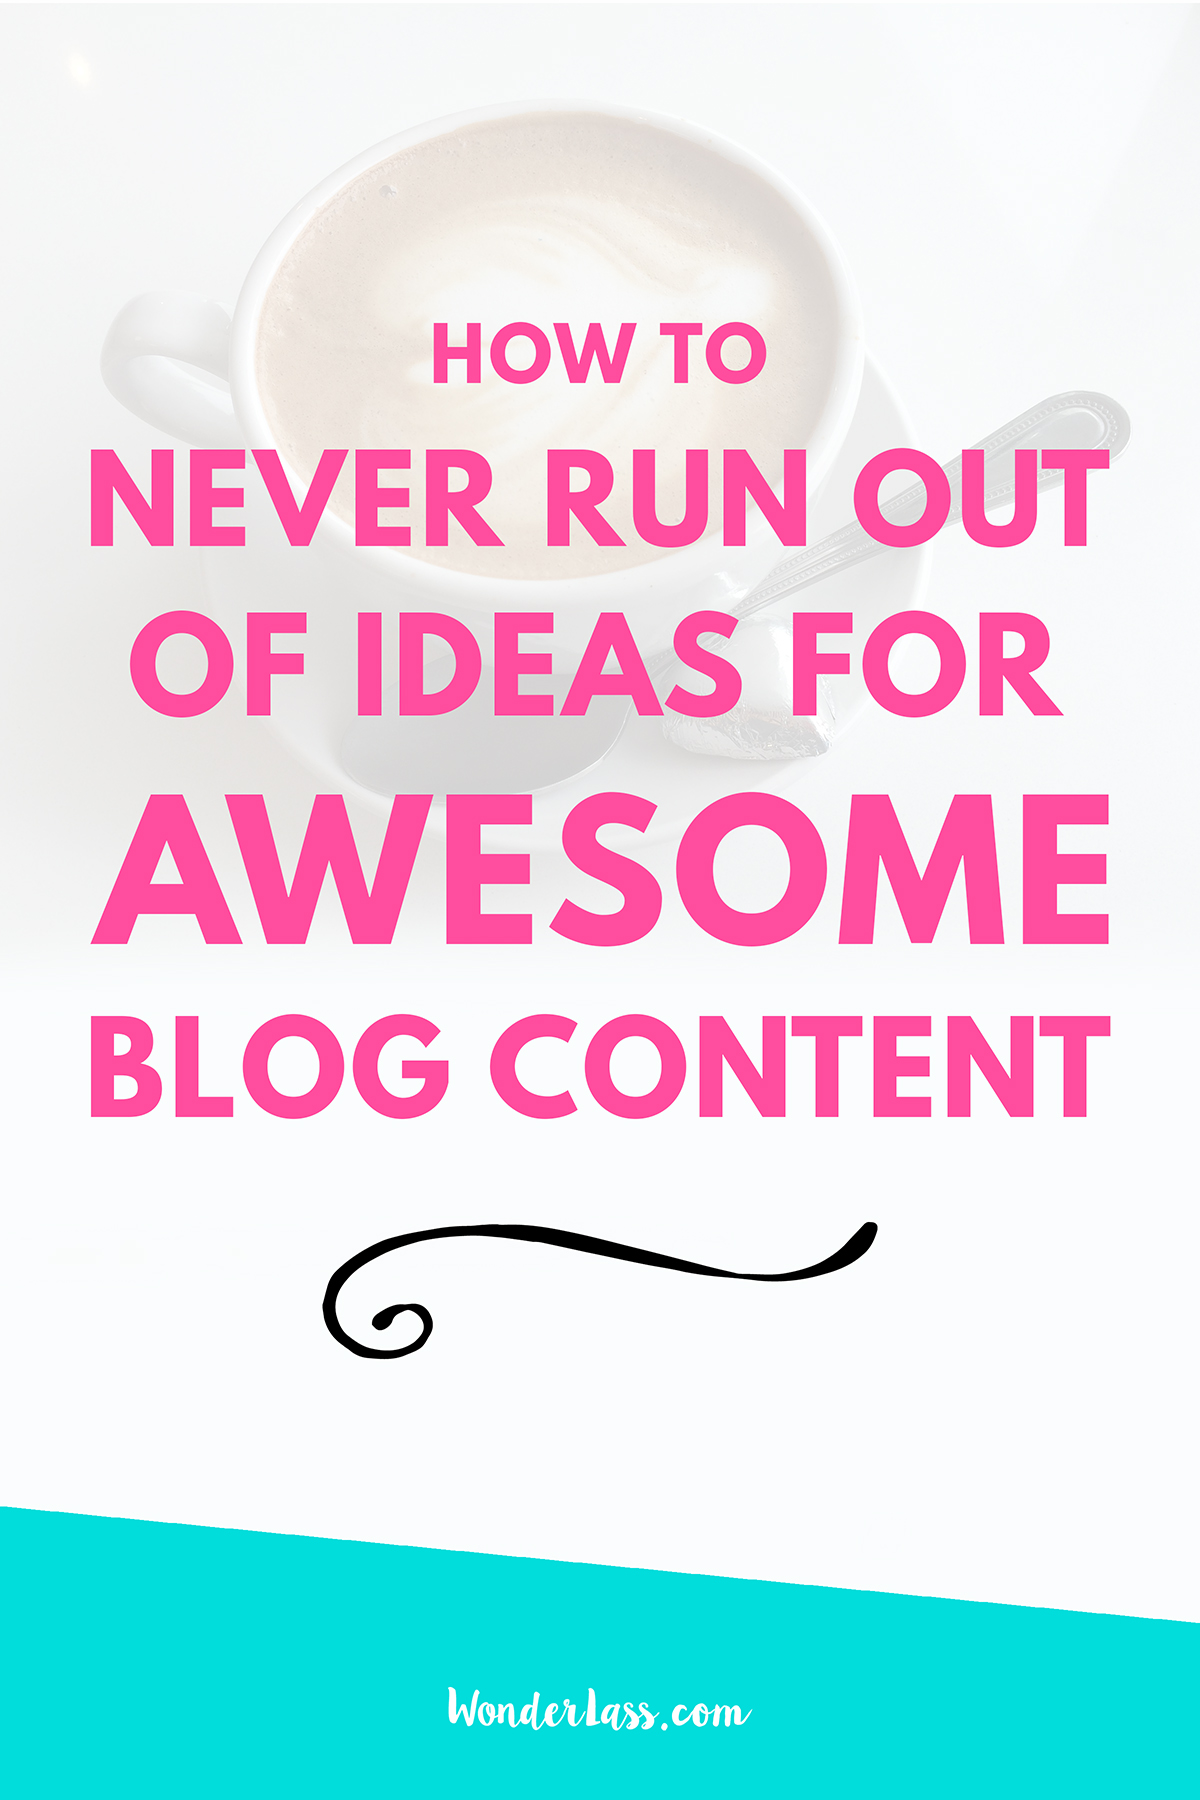 How to Never Run Out of Ideas for Awesome Blog Content | Wonderlass